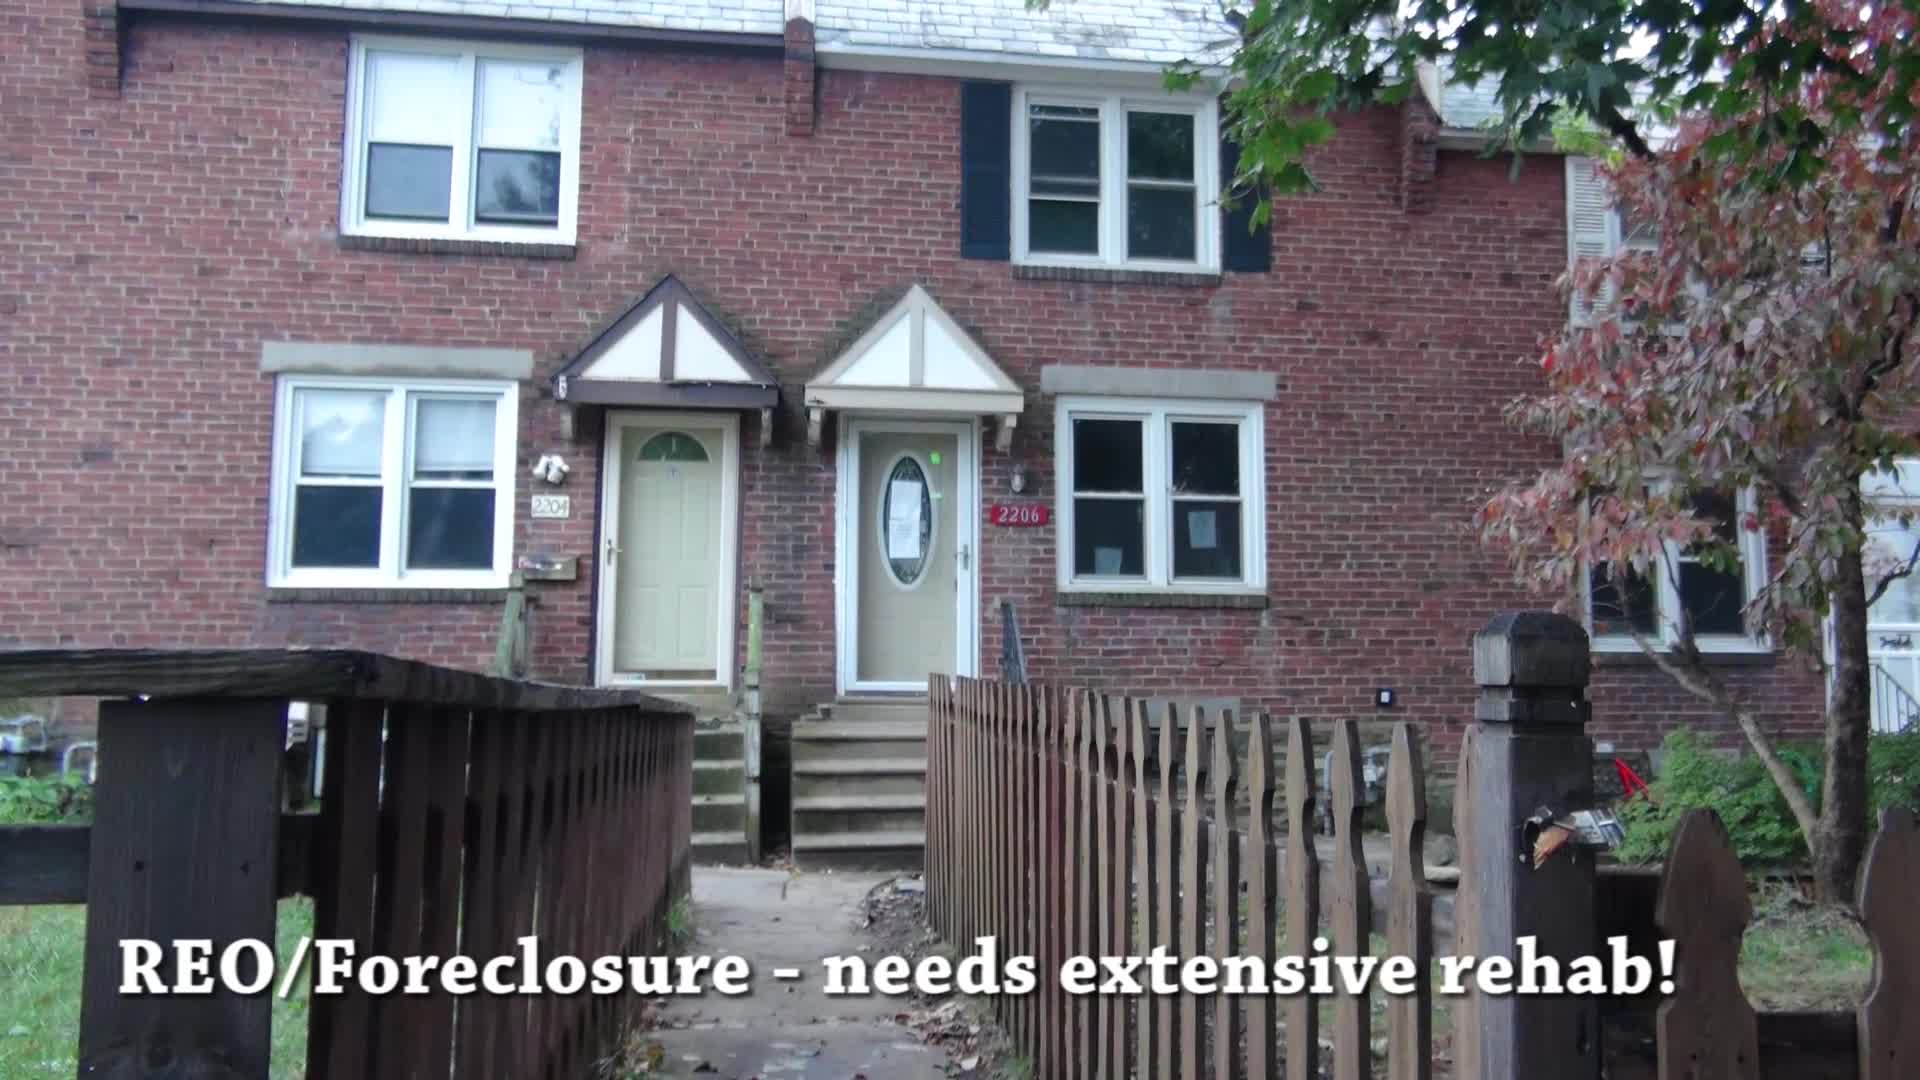 2206 Bond Drexel Hill PA 19026 – Foreclosure Properties Drexel Hill PA 19026